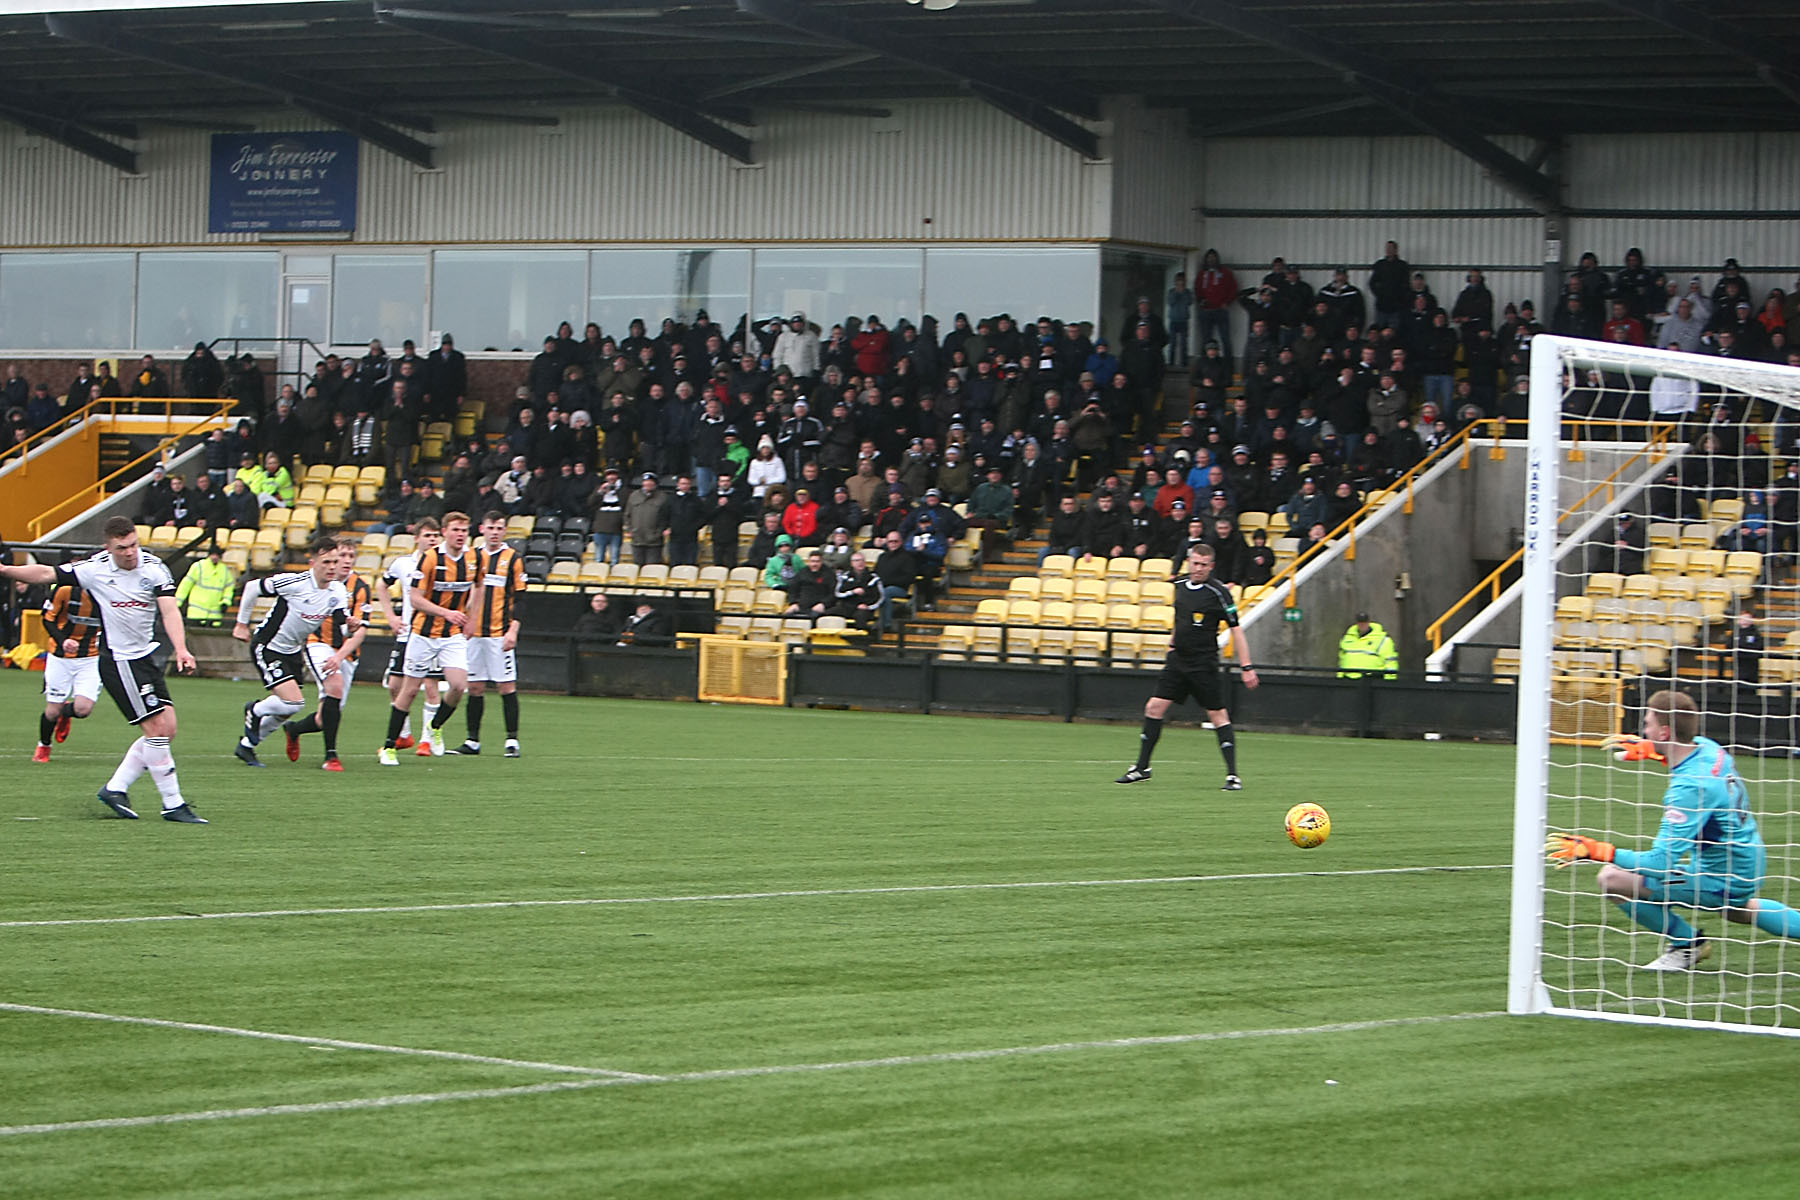 SPOT ON: Craig Moore fires home a late penalty kick to win the match for the visitors.